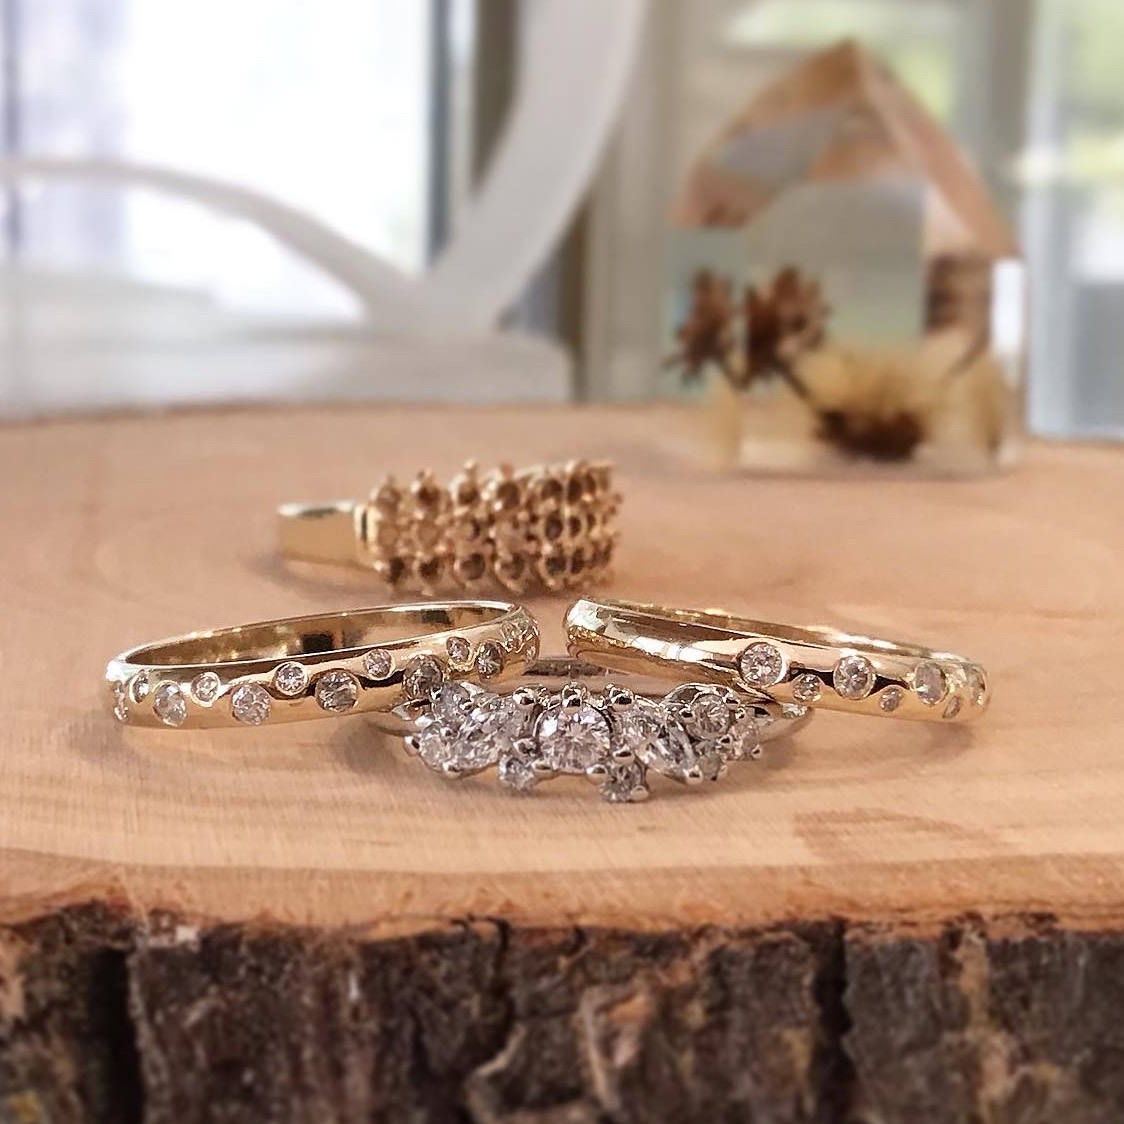 Upcycled 14K Yellow Gold & Diamond Stacking Bands